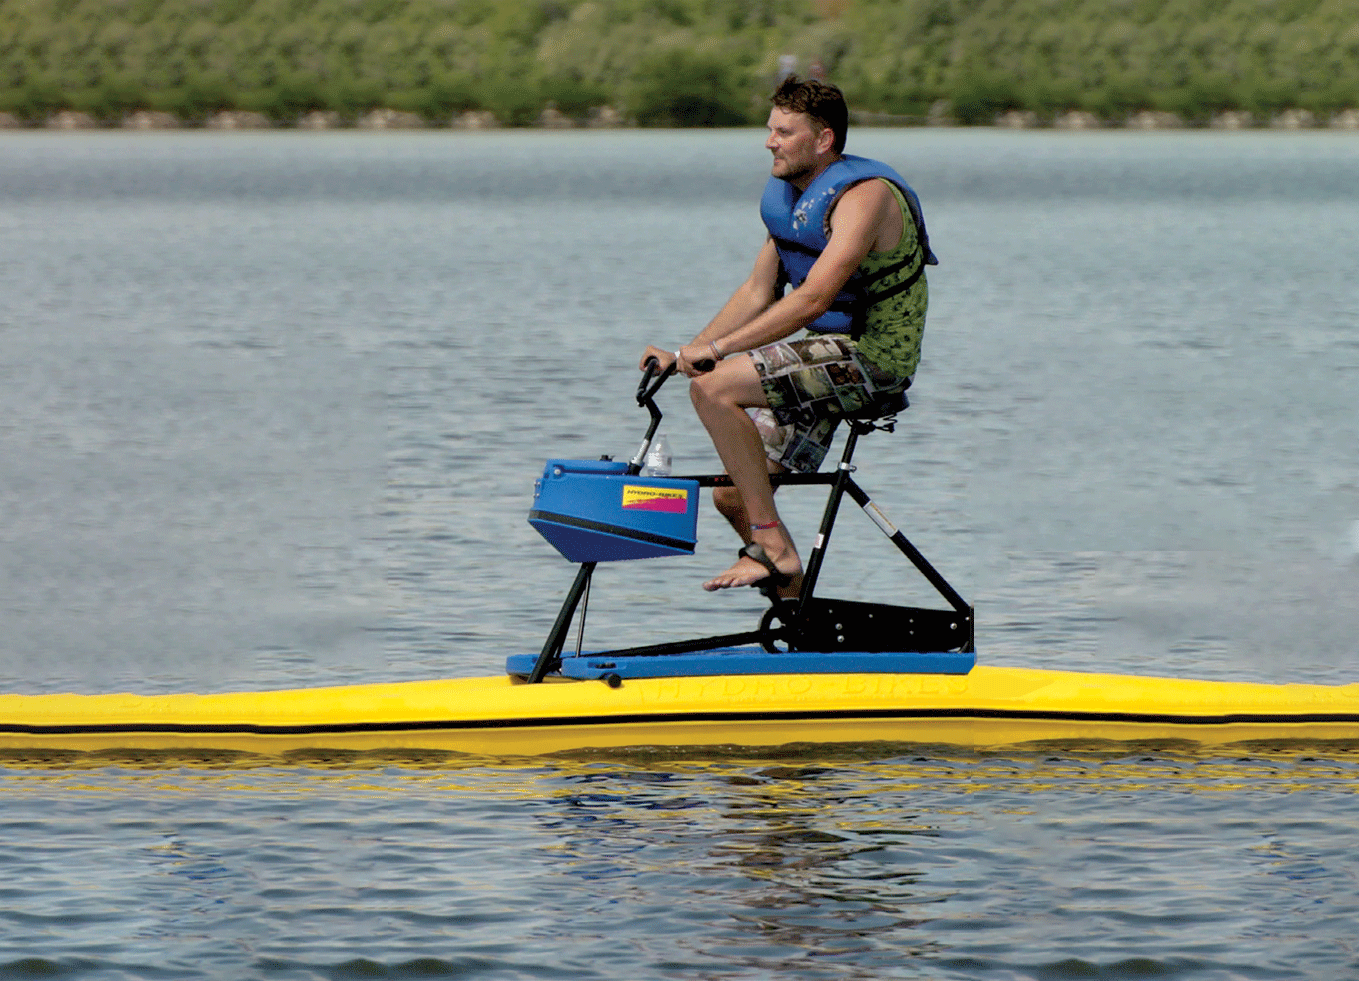 hydrobike vancouver boat rentals